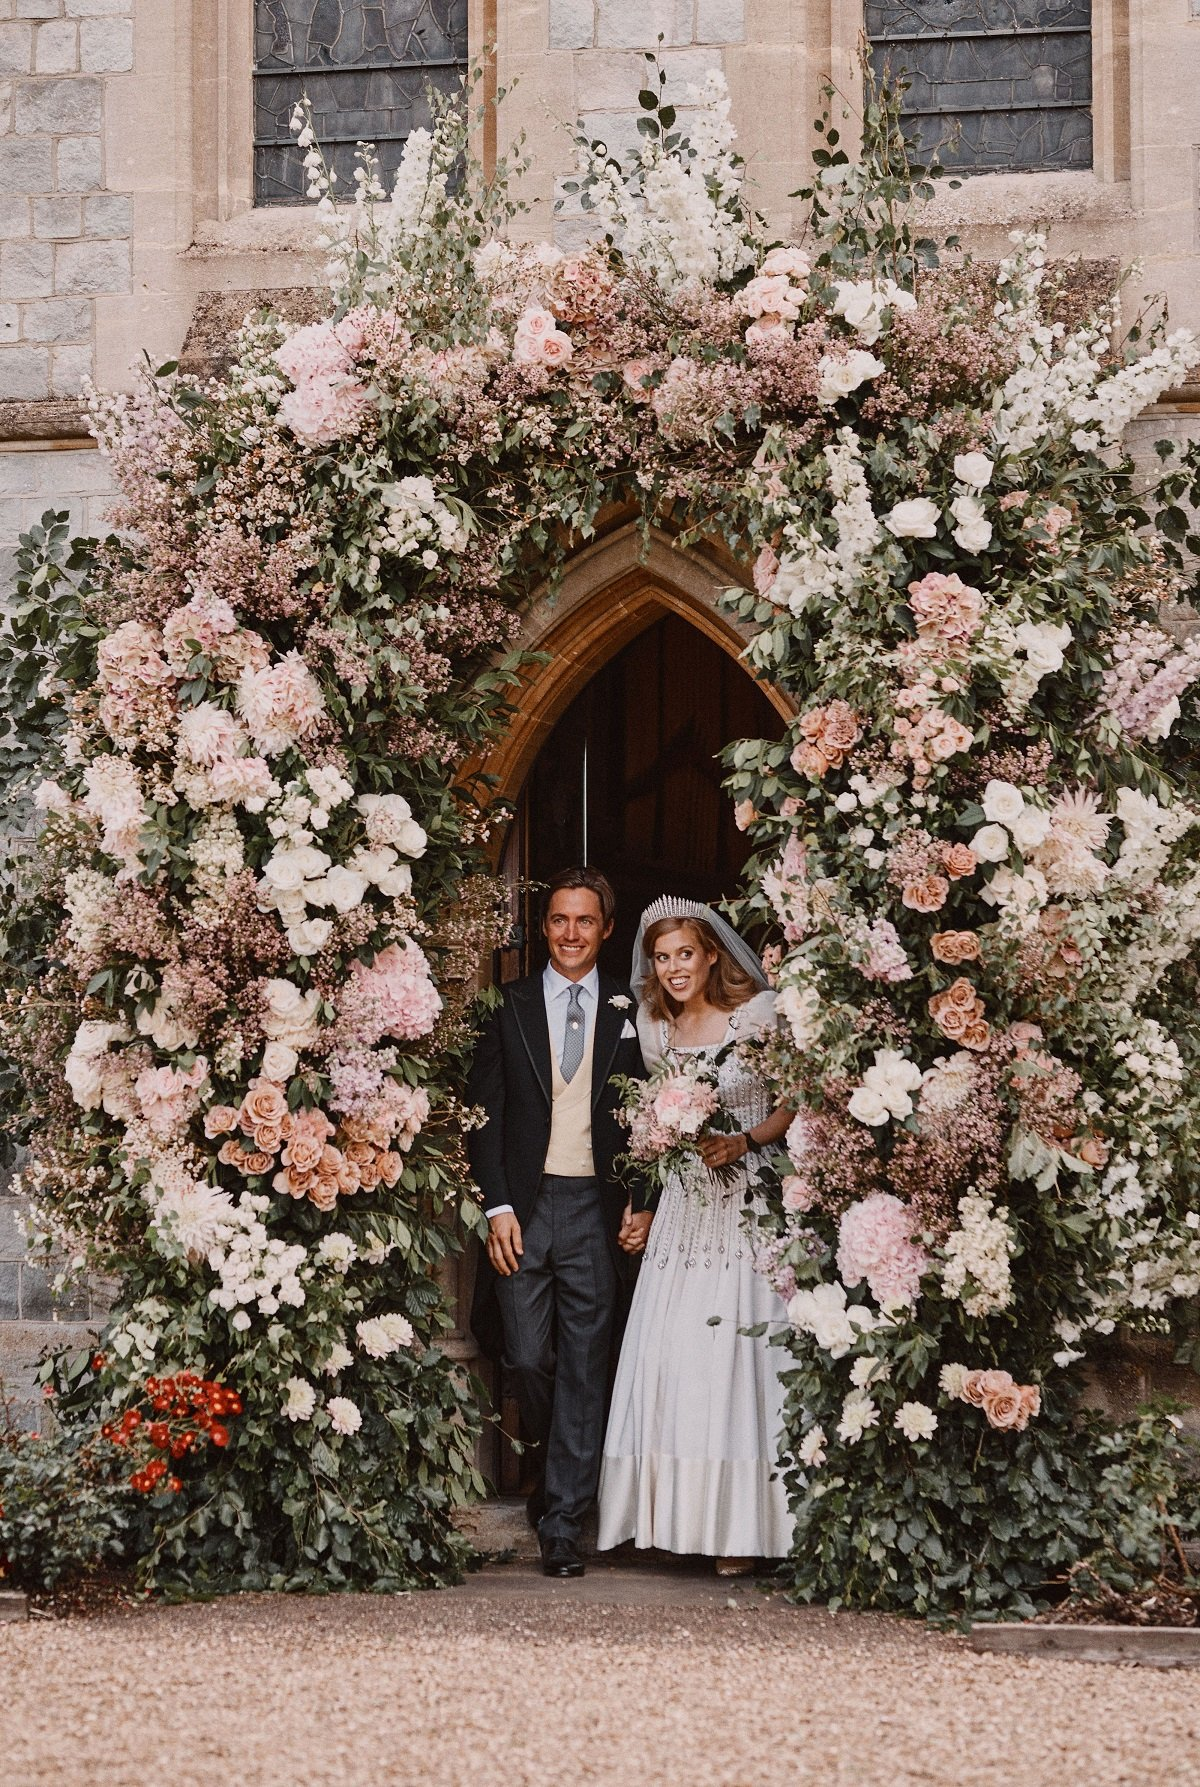 Prinzessin Beatrice und Edoardo Mapelli Mozzi verlassen die königliche All Saints Chapel in der Royal Lodge, Windsor, nach ihrer Hochzeit am 17. Juli 2020 in England | Quelle: Benjamin Wheeler - WPA Pool/Getty Images